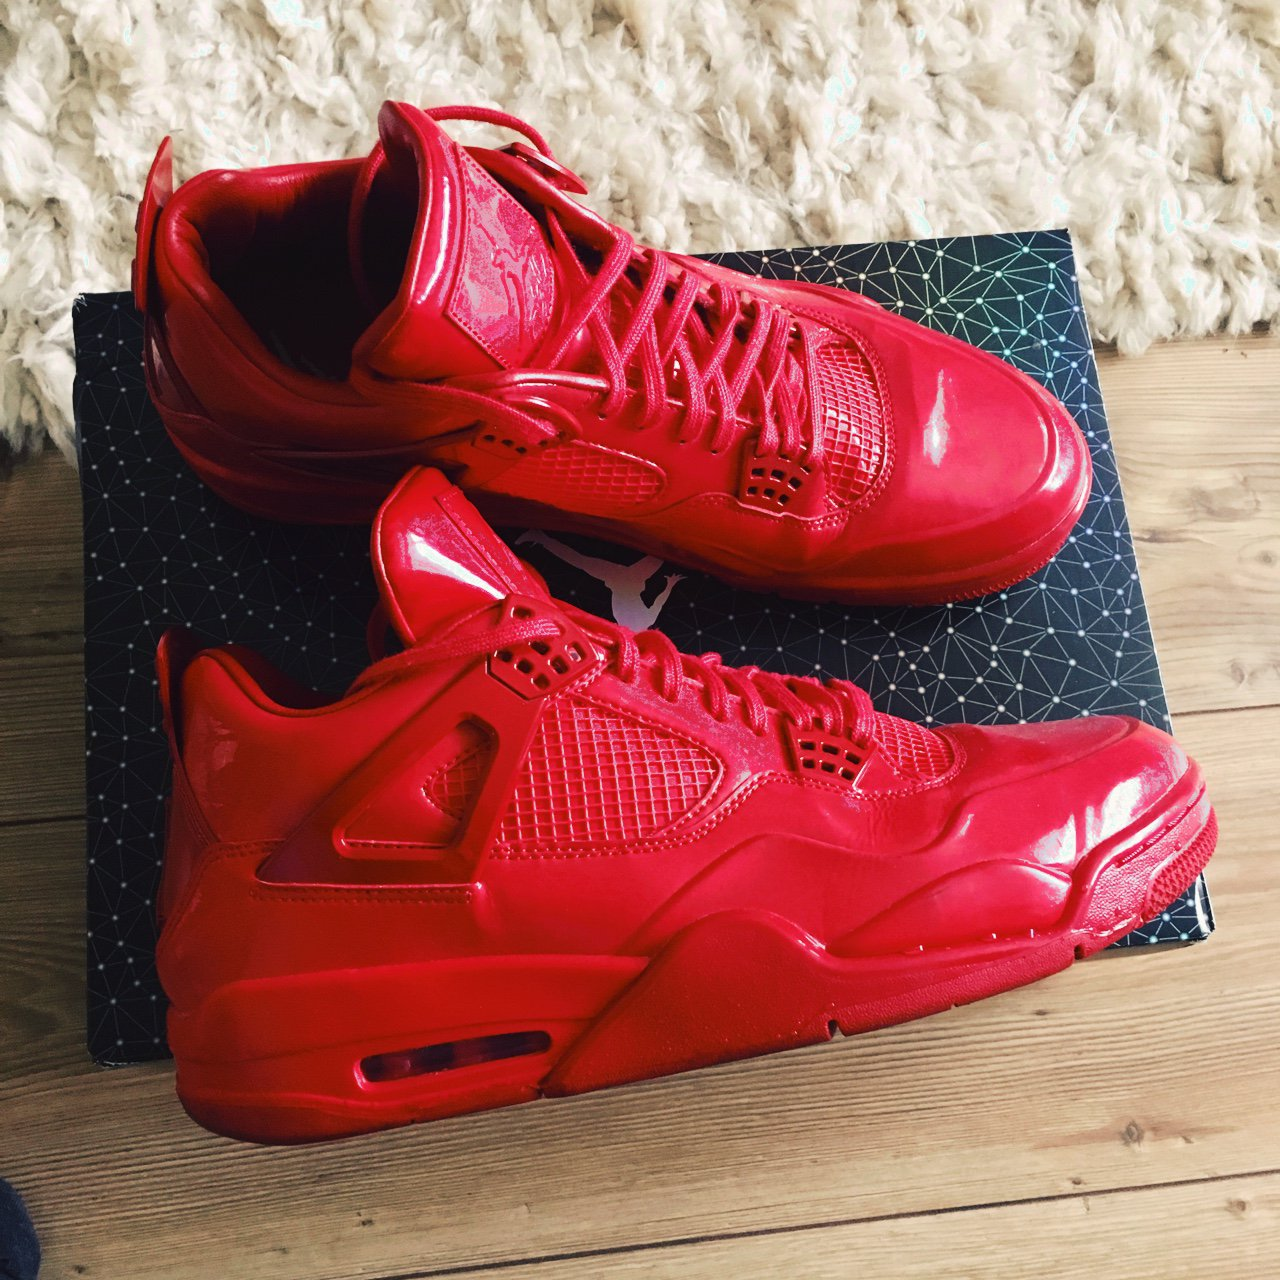 4b9d7c9e8206 Jordan 4 lab red 9 10 condition hardly worn Size 11.5 will - Depop